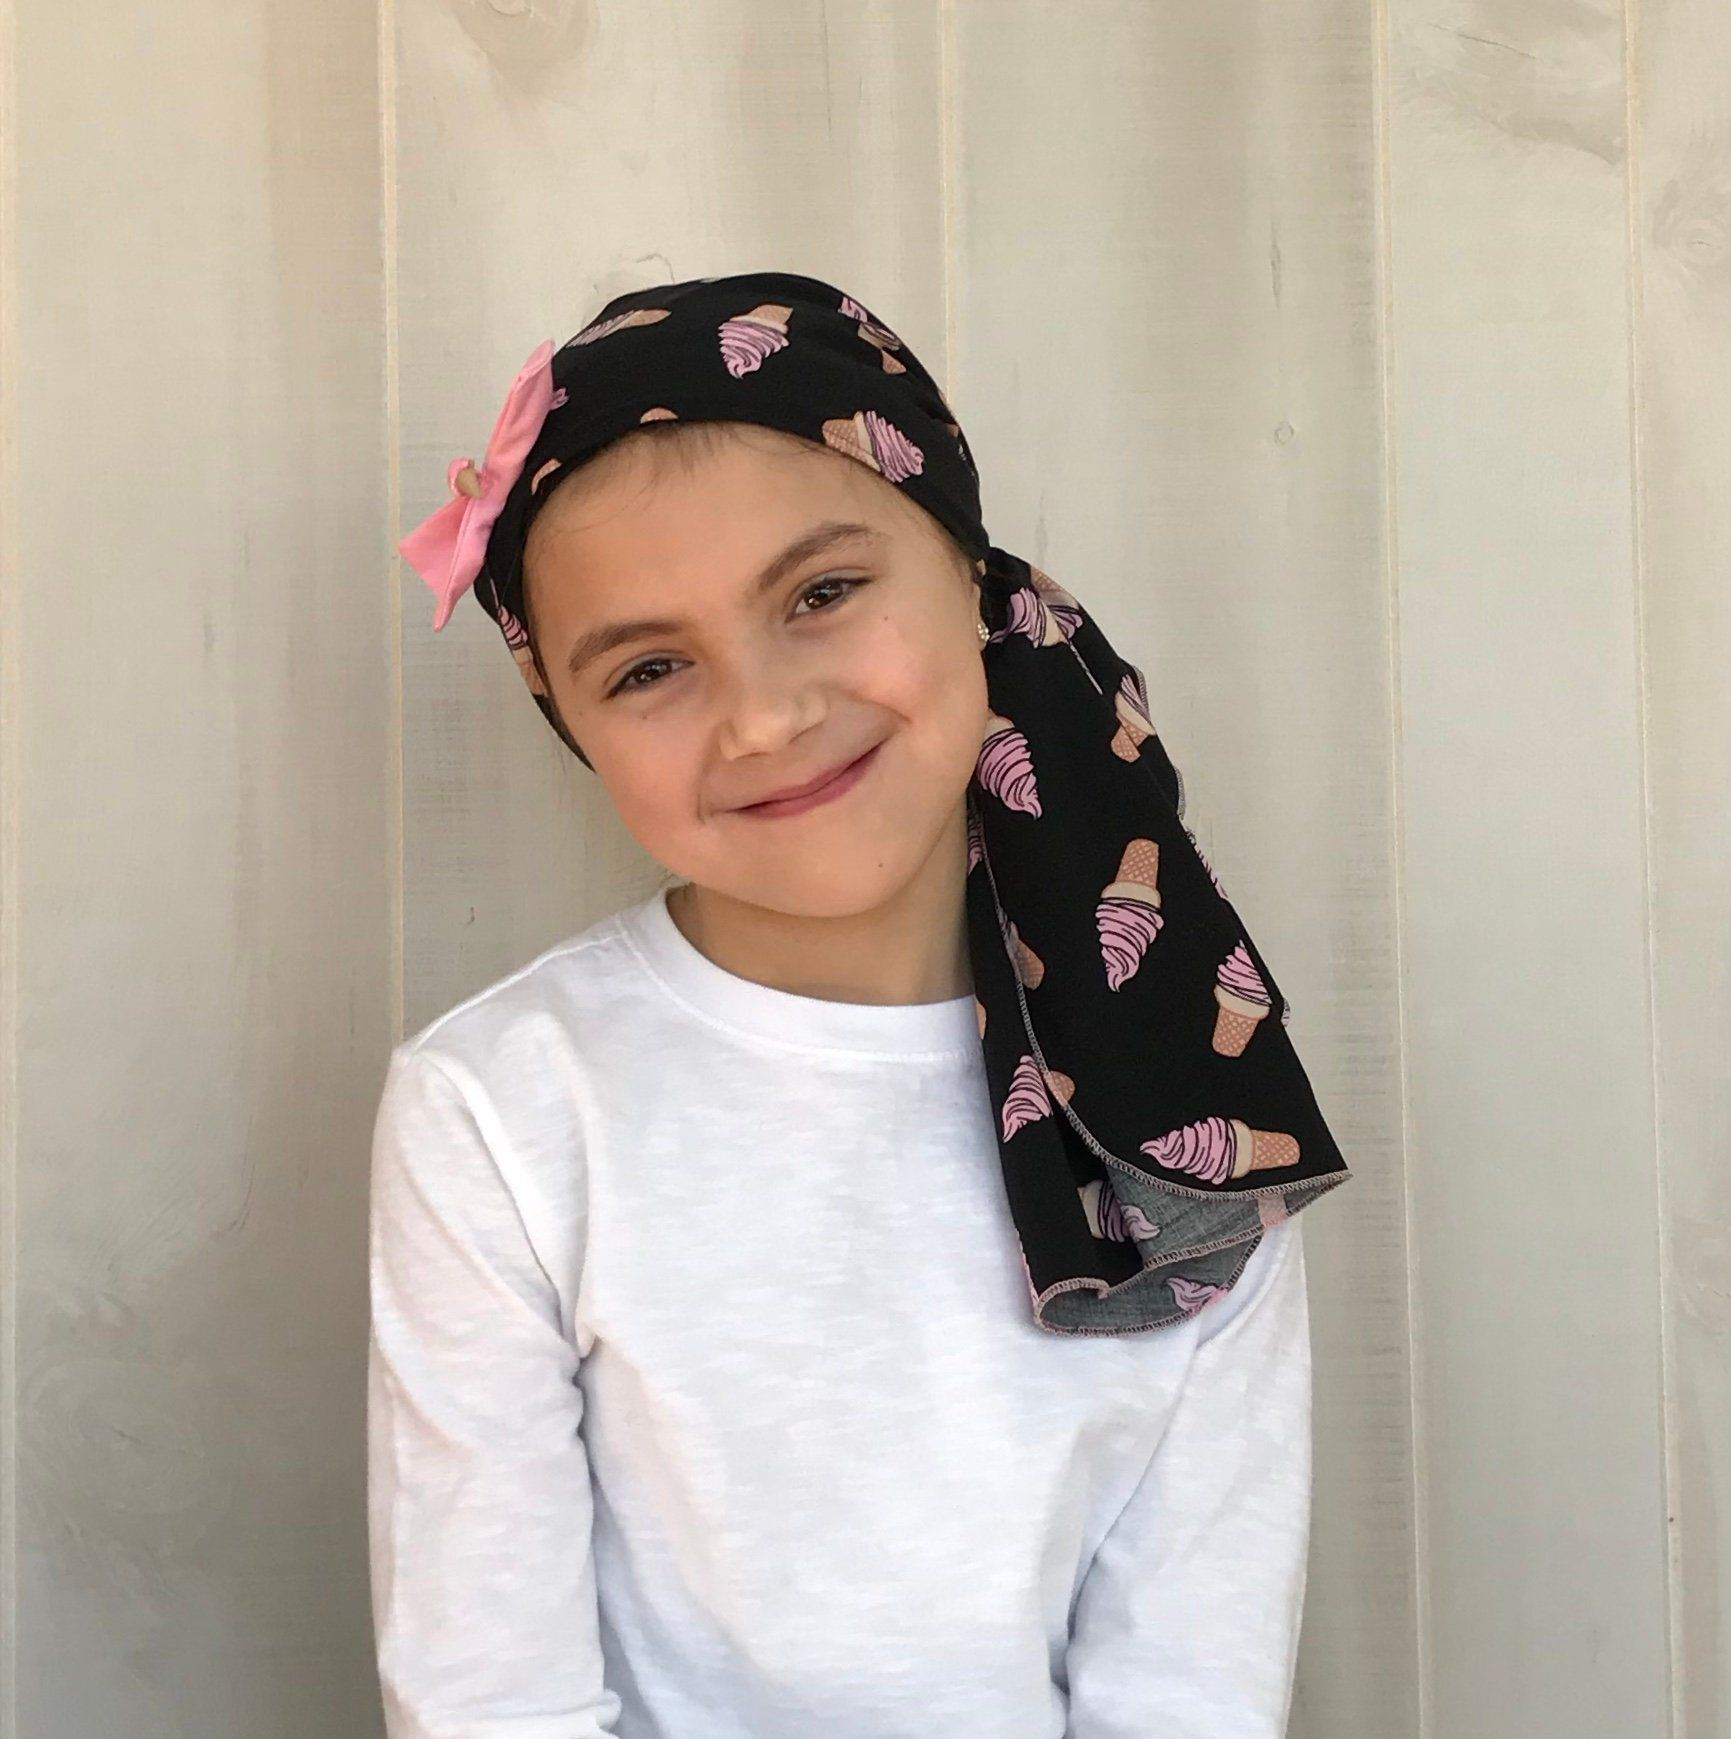 Child's Pre-Tied Head Scarf, Girl's Chemo Hat, Cancer Head Cover, Alopecia Headwear, Head Wrap, Cancer Gift, Hair Loss, Pink Ice Cream Cones #tieheadscarves